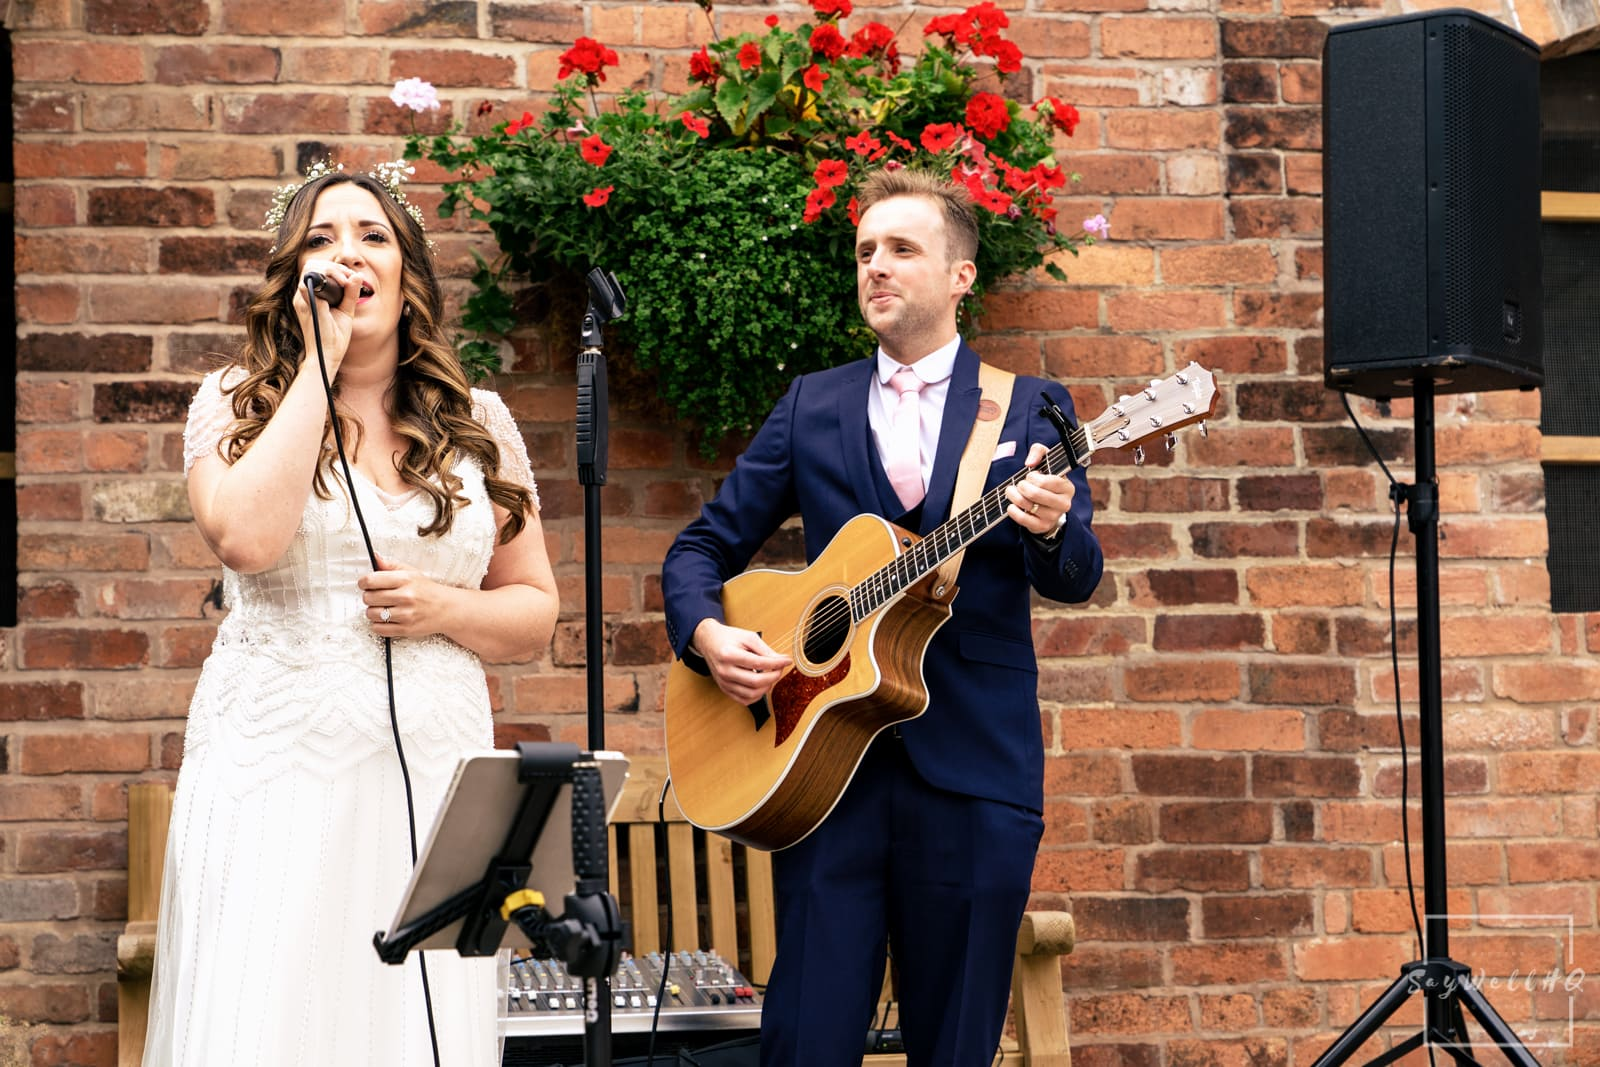 Mapperley Farm Wedding Photography + Mapperley Farm Wedding Photographer + Bride sings as wedding guests celebrate in the courtyard after the wedding ceremony in a converted barn